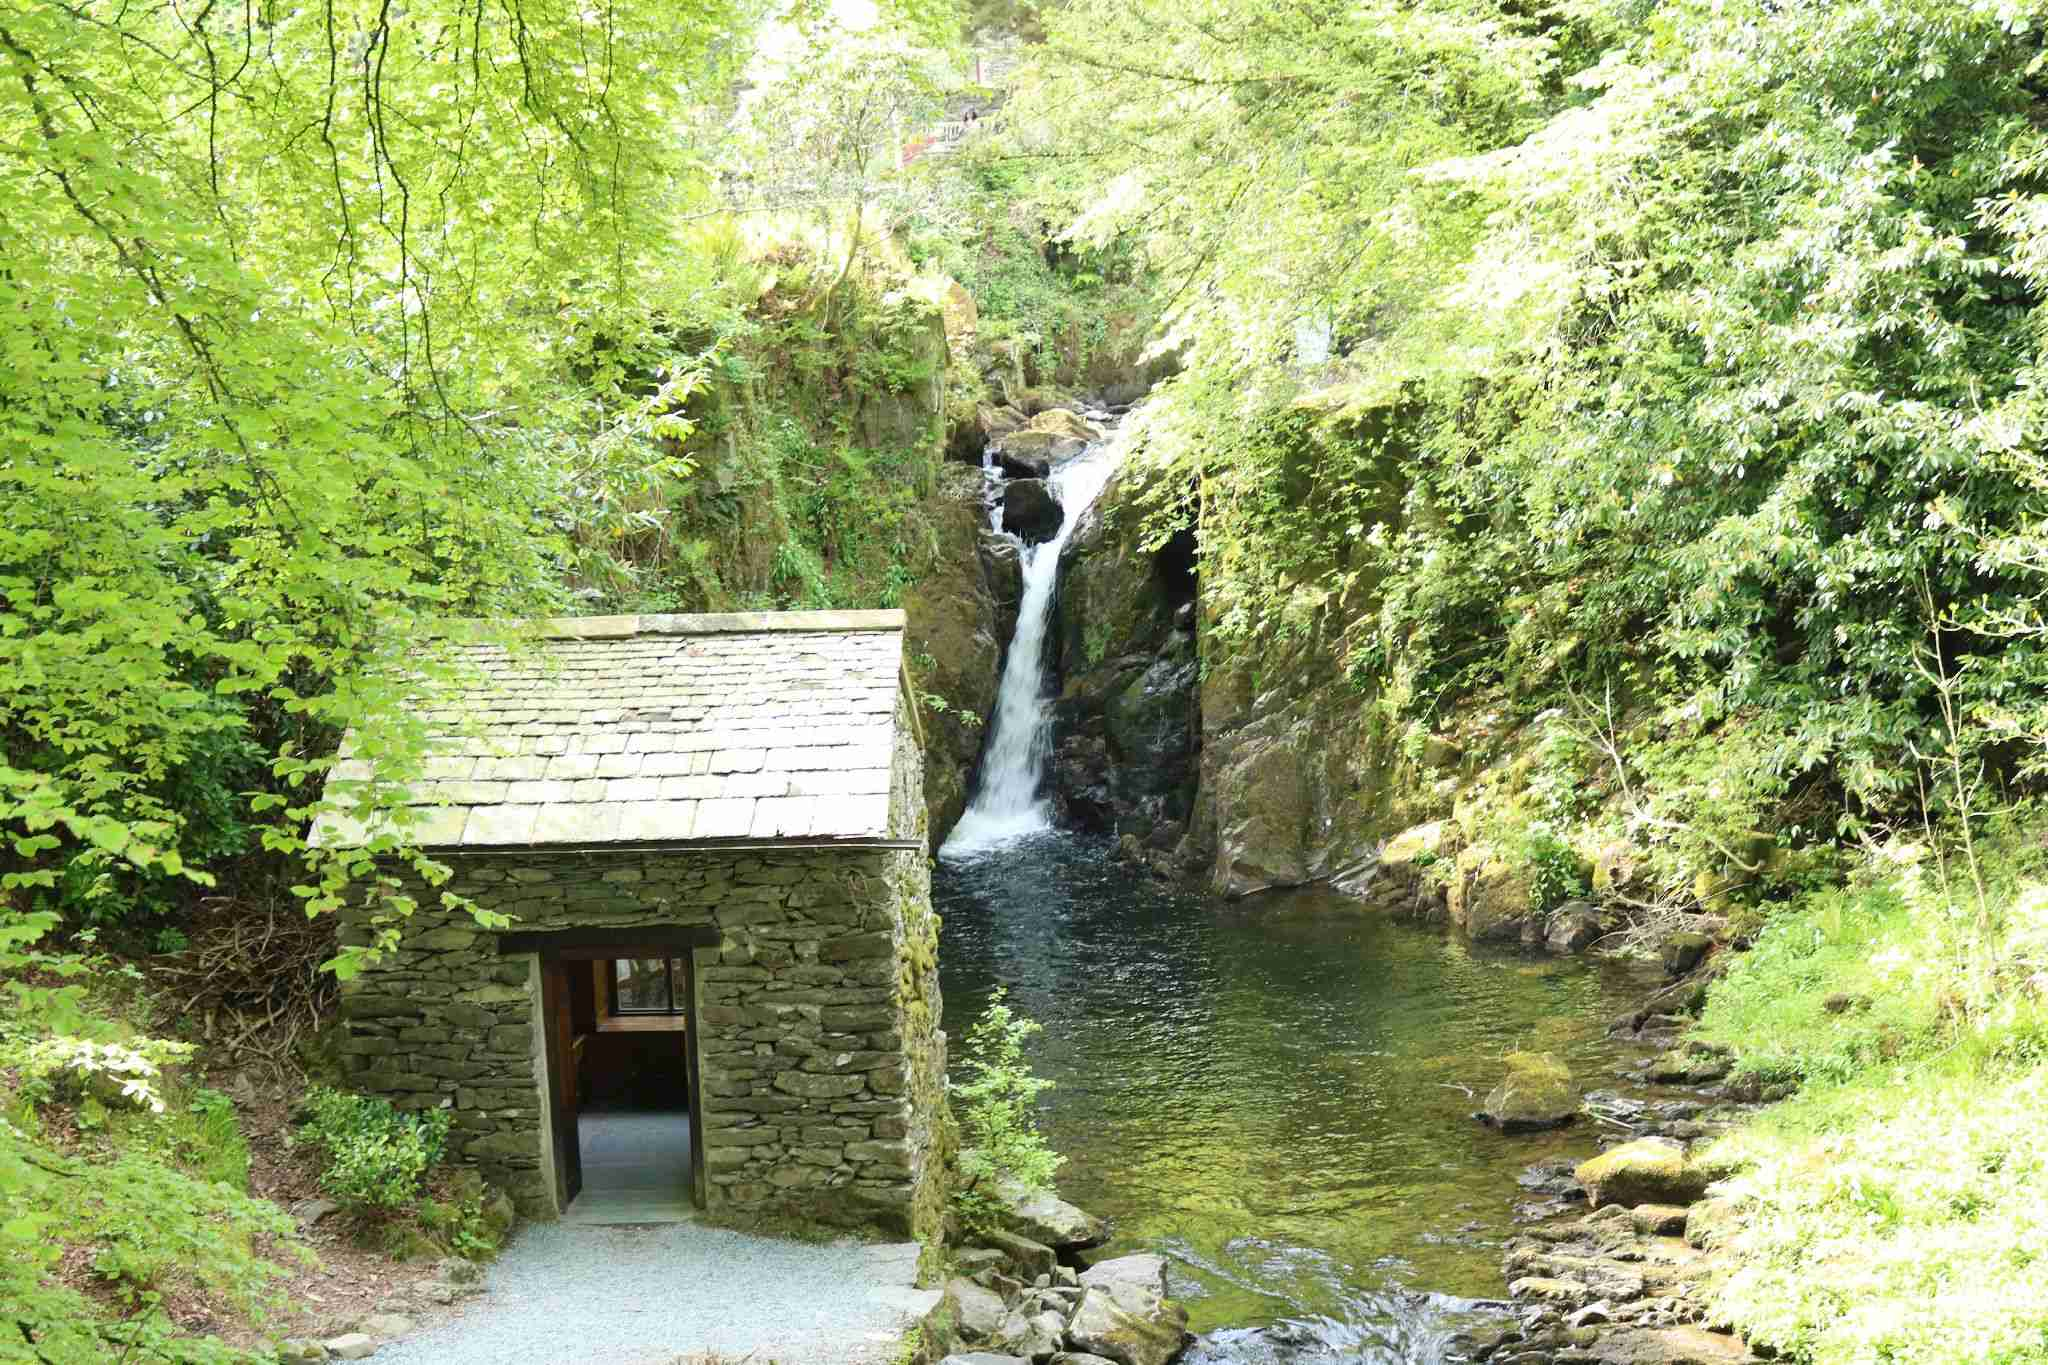 Rydal Grot and waterfall